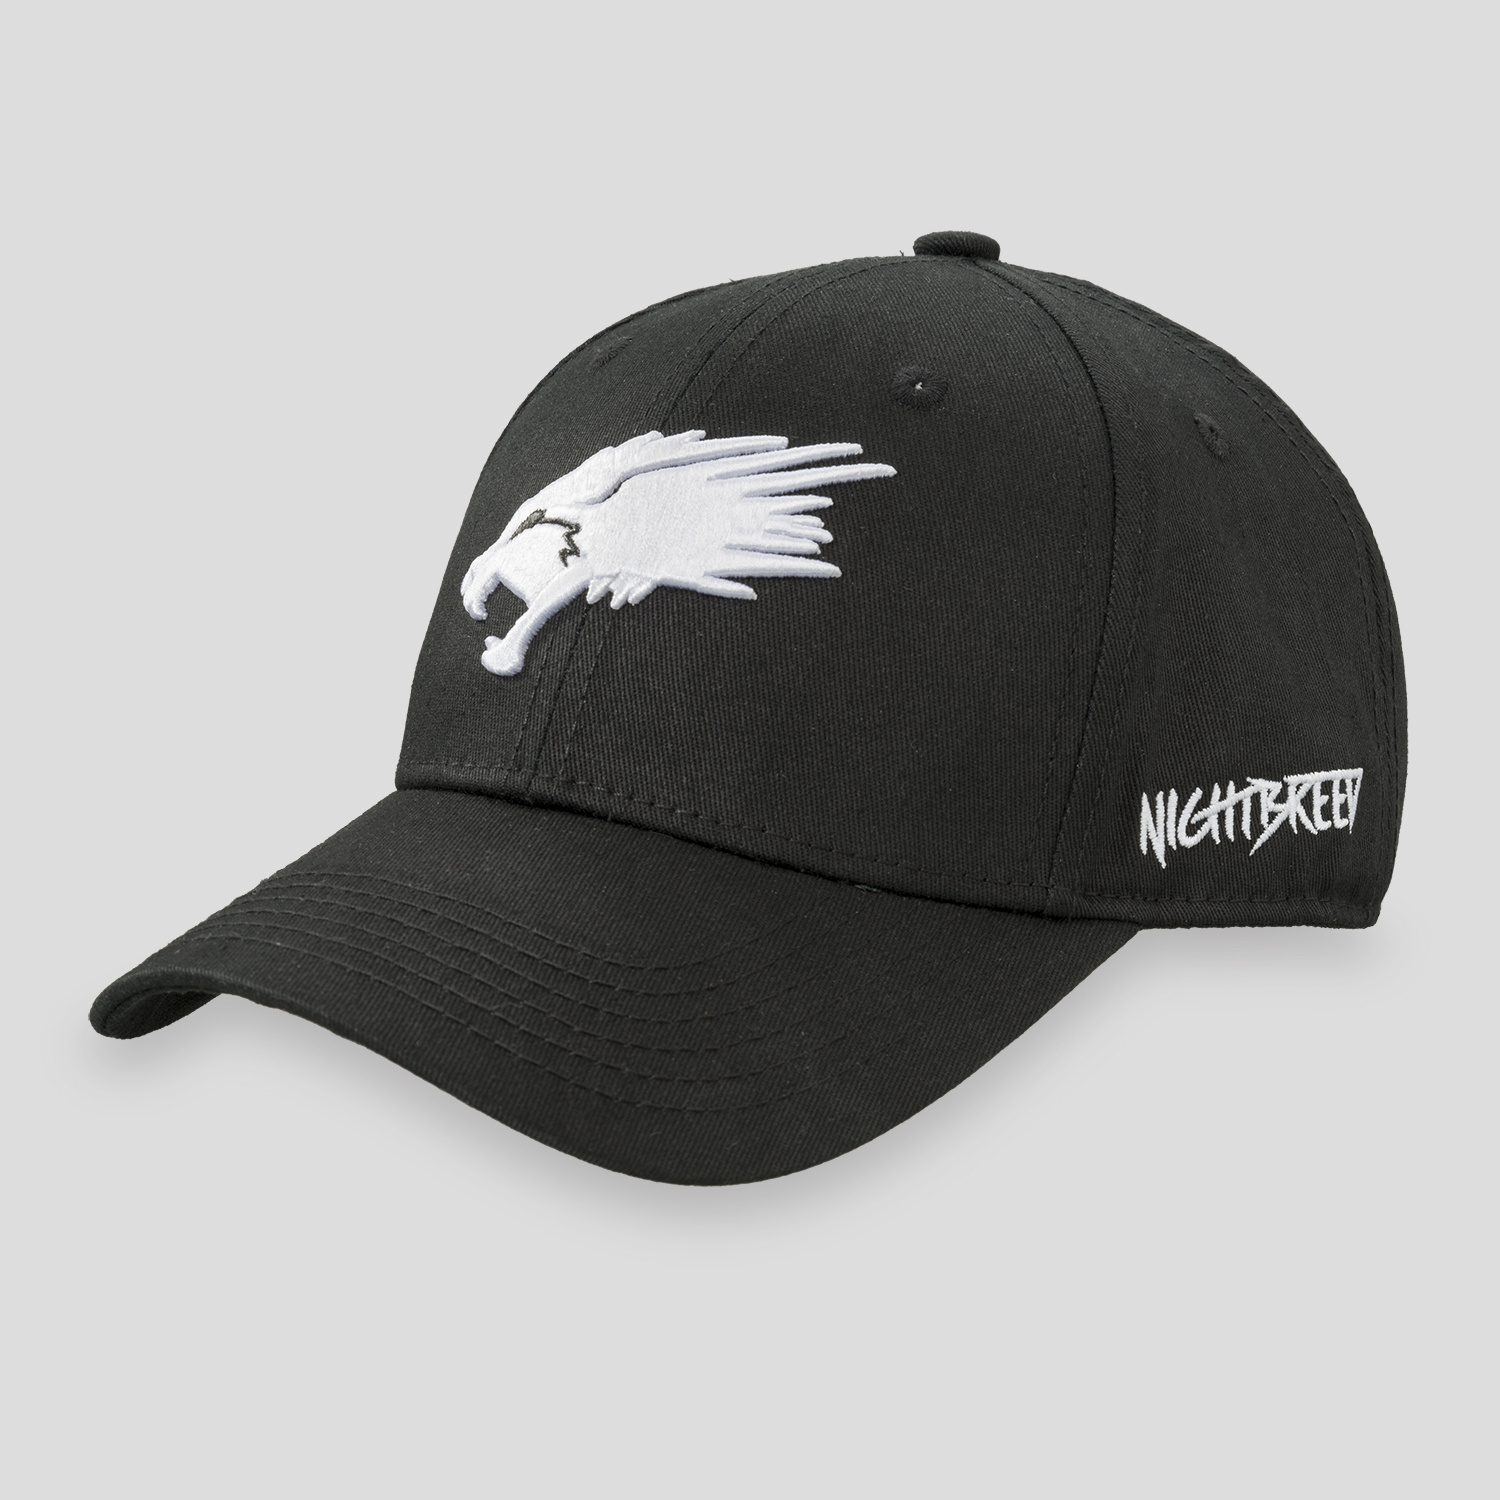 NIGHTBREED BASEBALL CAP BLACK/WHITE